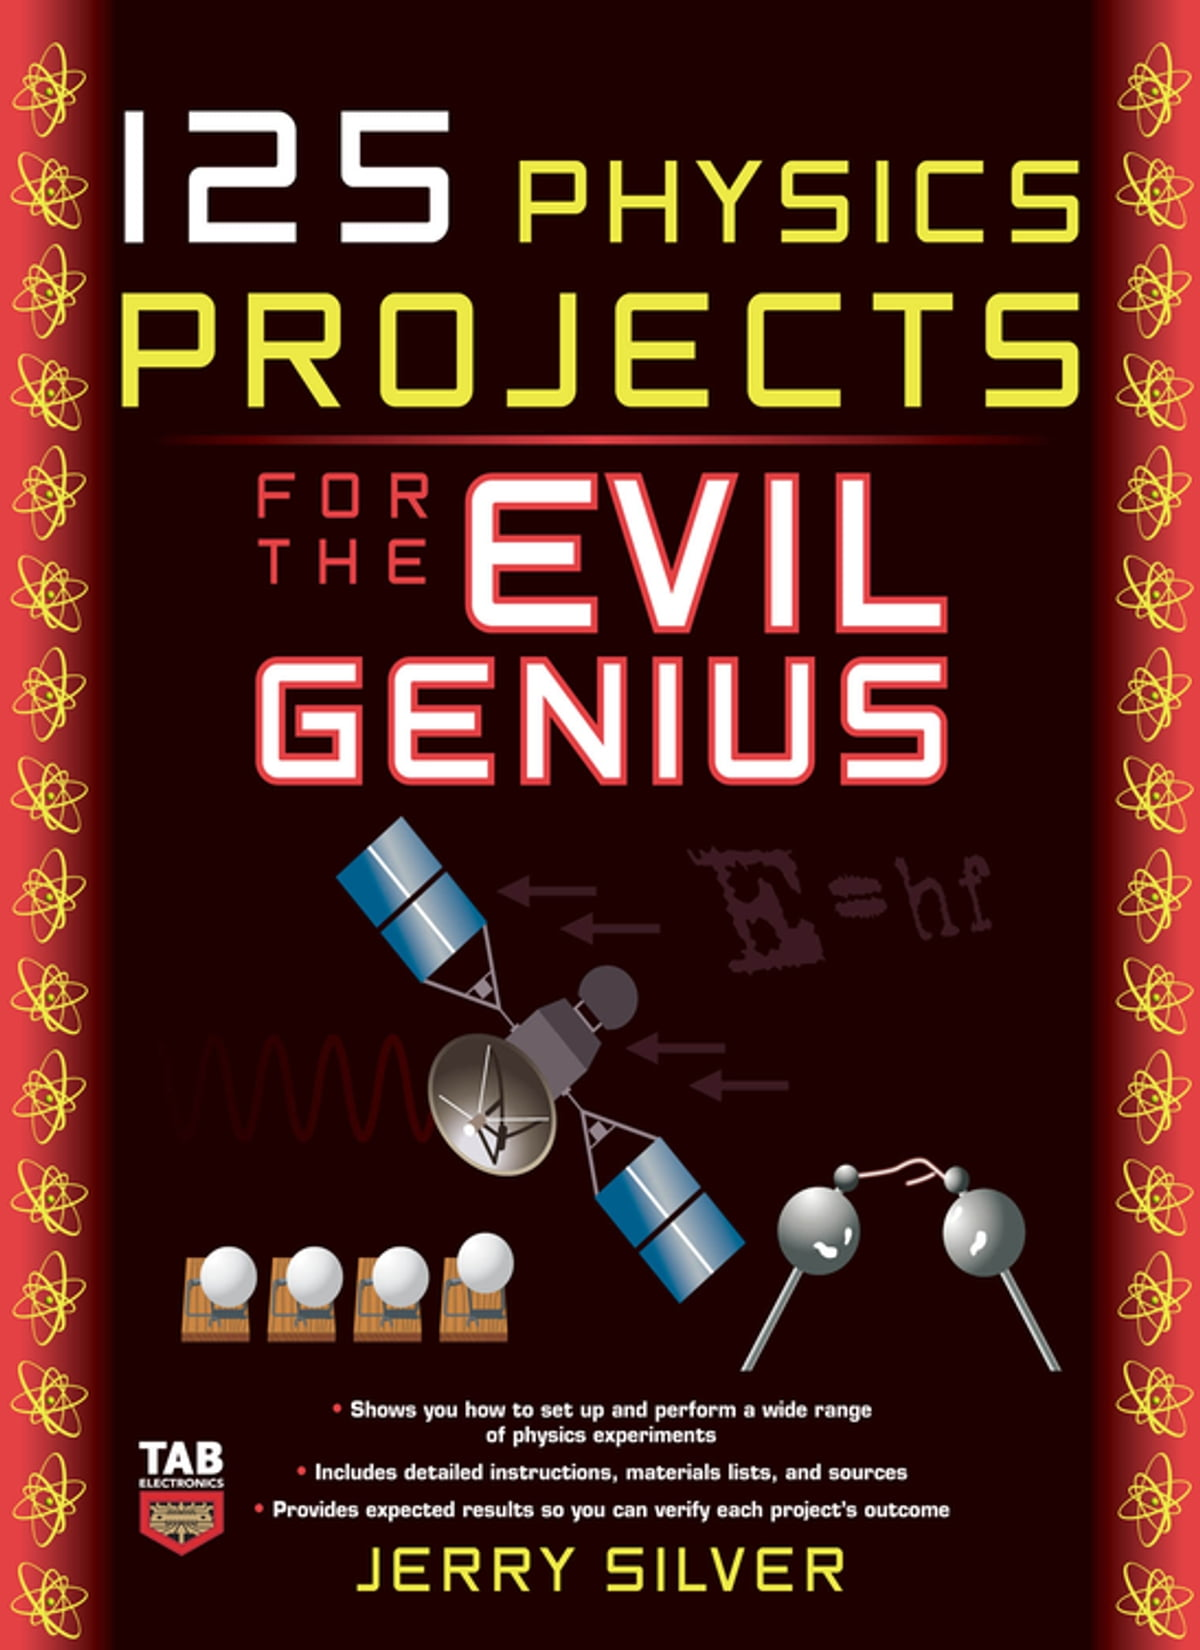 125 Physics Projects for the Evil Genius eBook by Jerry Silver -  9780071626071 | Rakuten Kobo